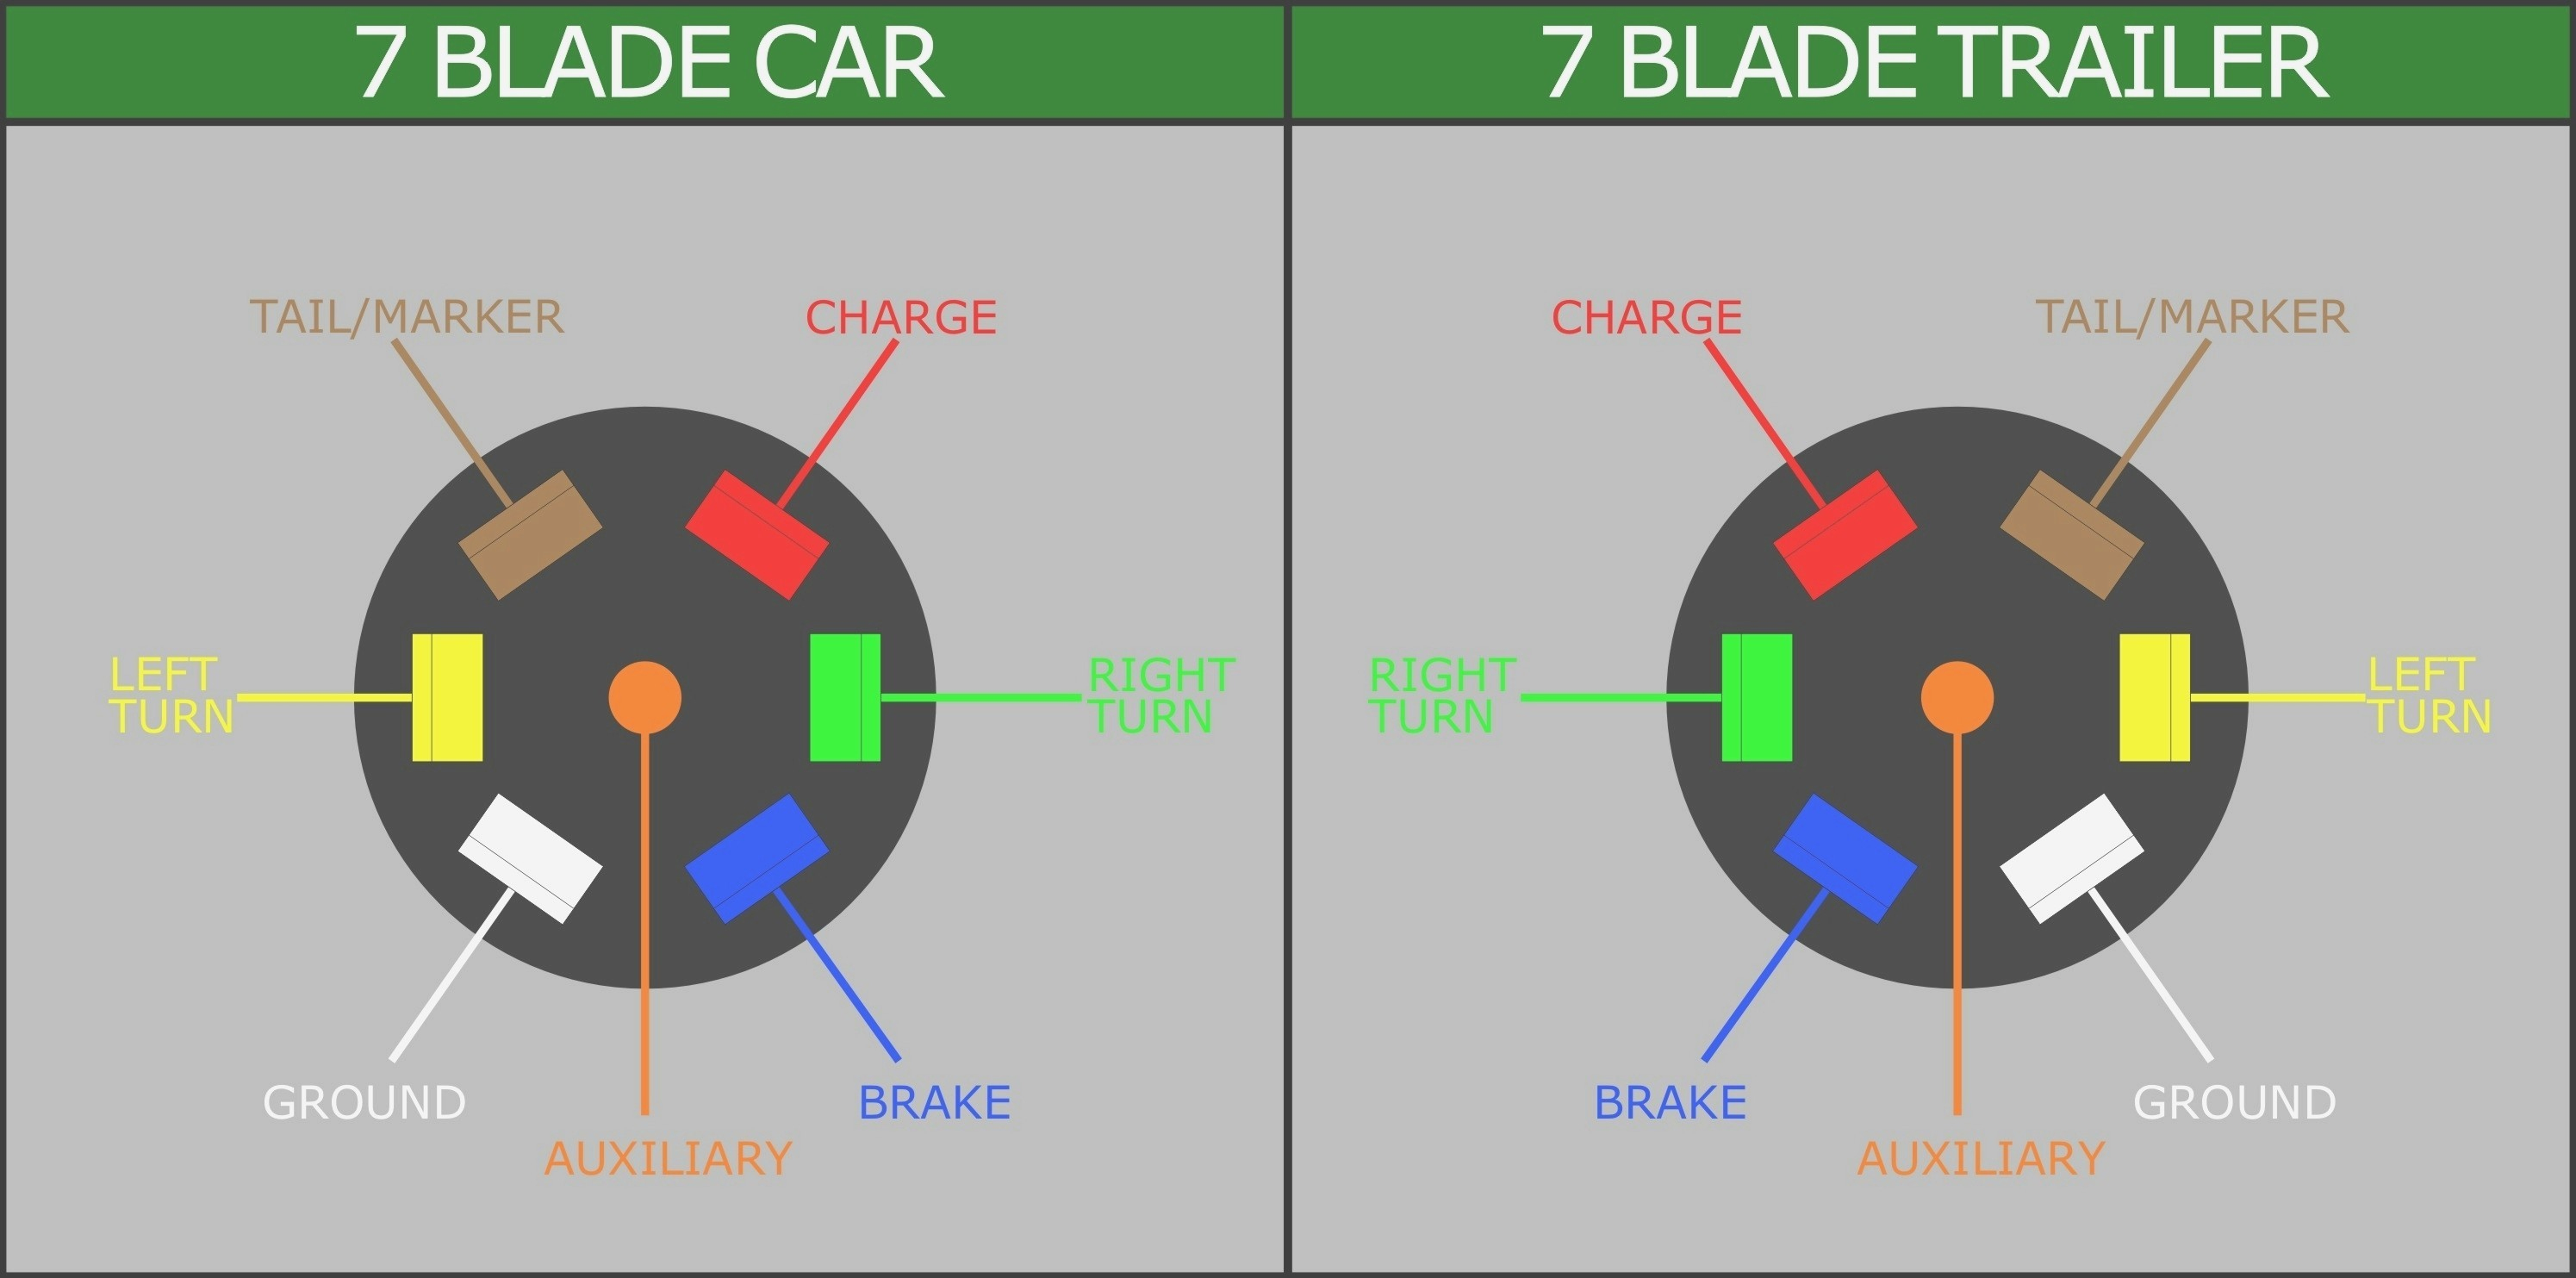 7 Blade Trailer Wiring Diagram Wire Color - Wiring Diagrams Thumbs - 7 Way Trailer Wiring Diagram Color